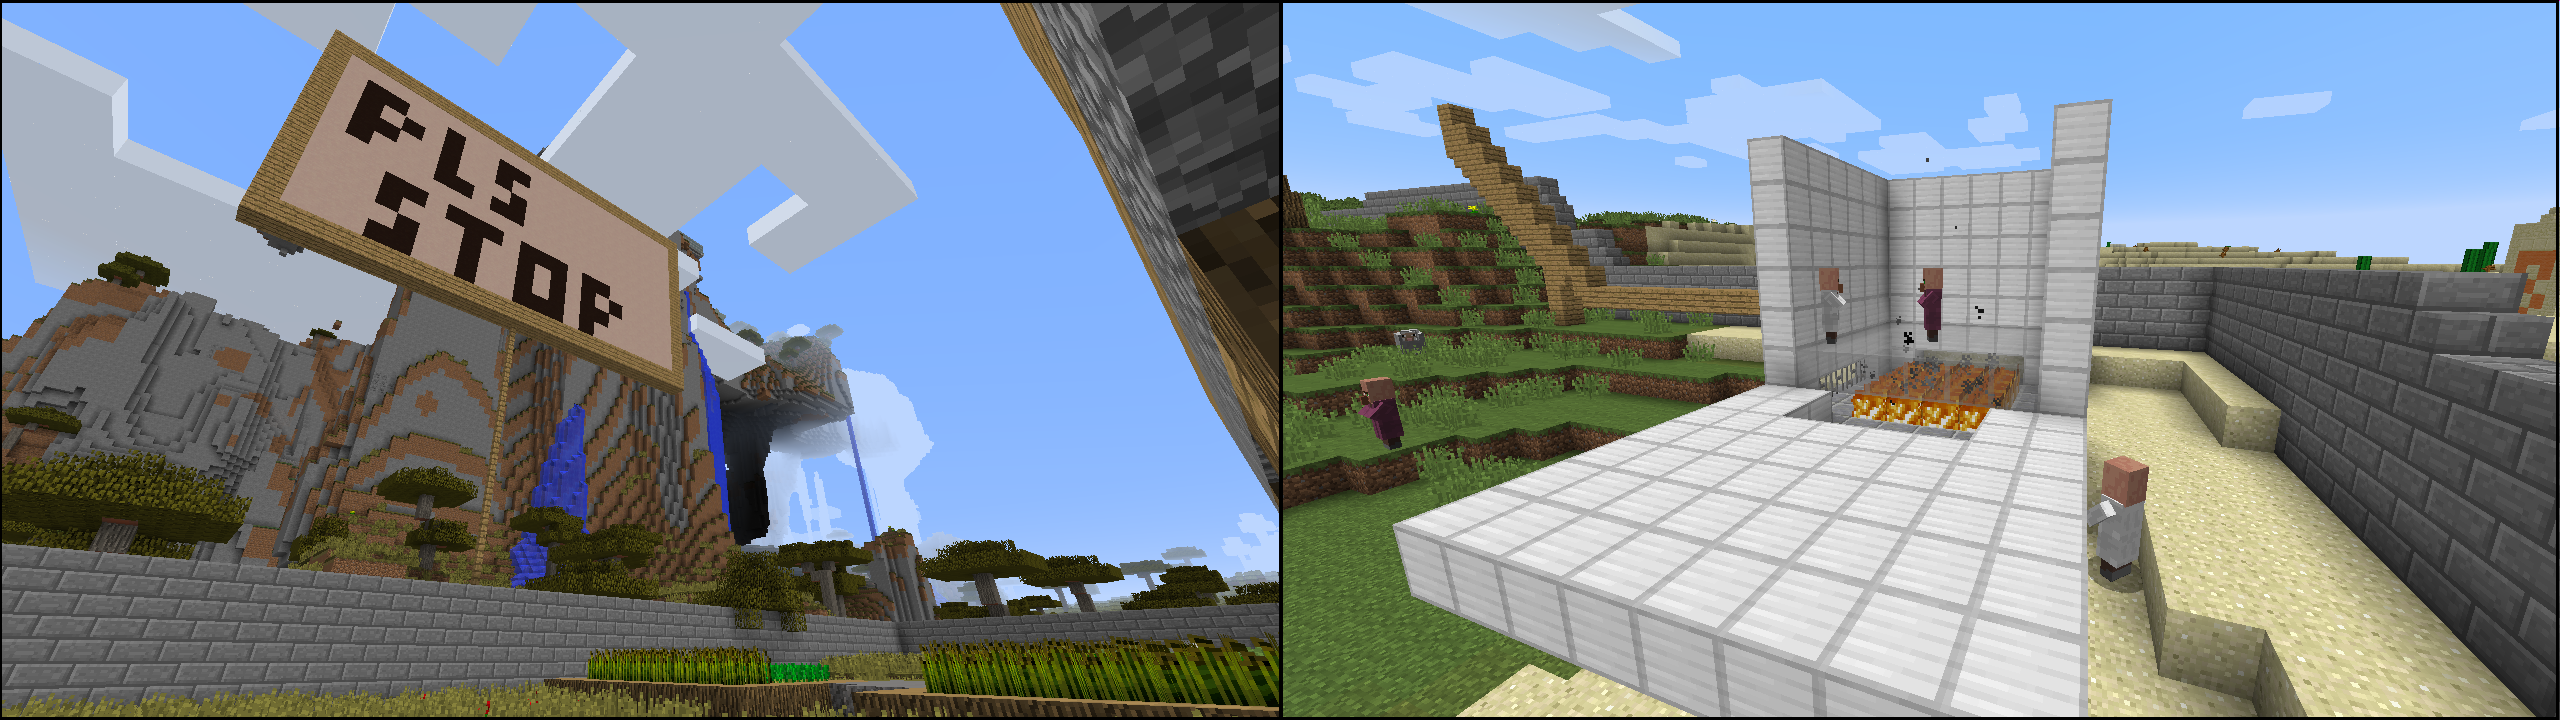 The villager project day 4 amusement news minecraft forum on the right we see the cauldron being opened up for the villagers to come and go as they please sciox Images